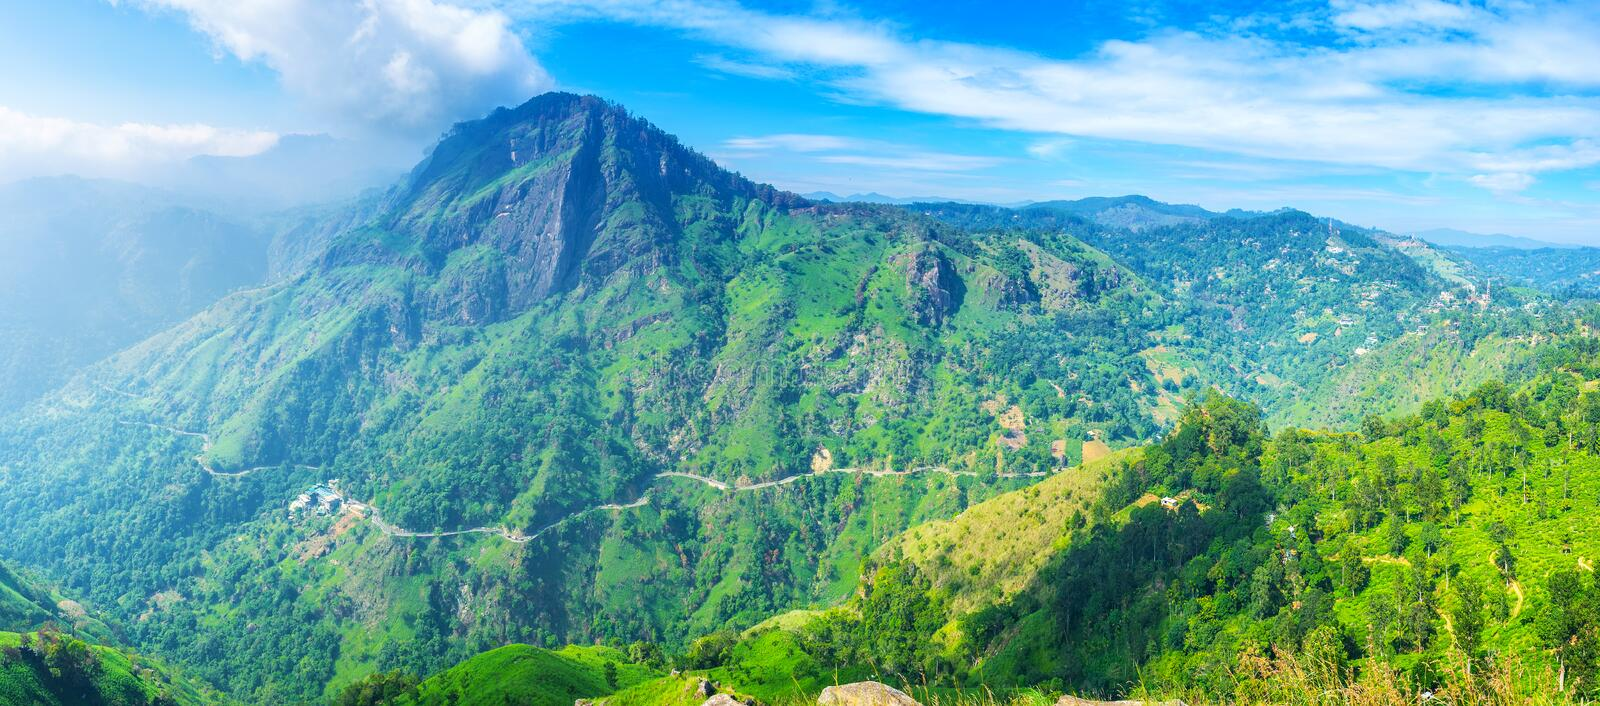 In highlands of Ella. Ella resort is the popular ecotourism destination, people arrive here to visit famous mountain peaks and enjoy local nature, Sri Lanka royalty free stock photo